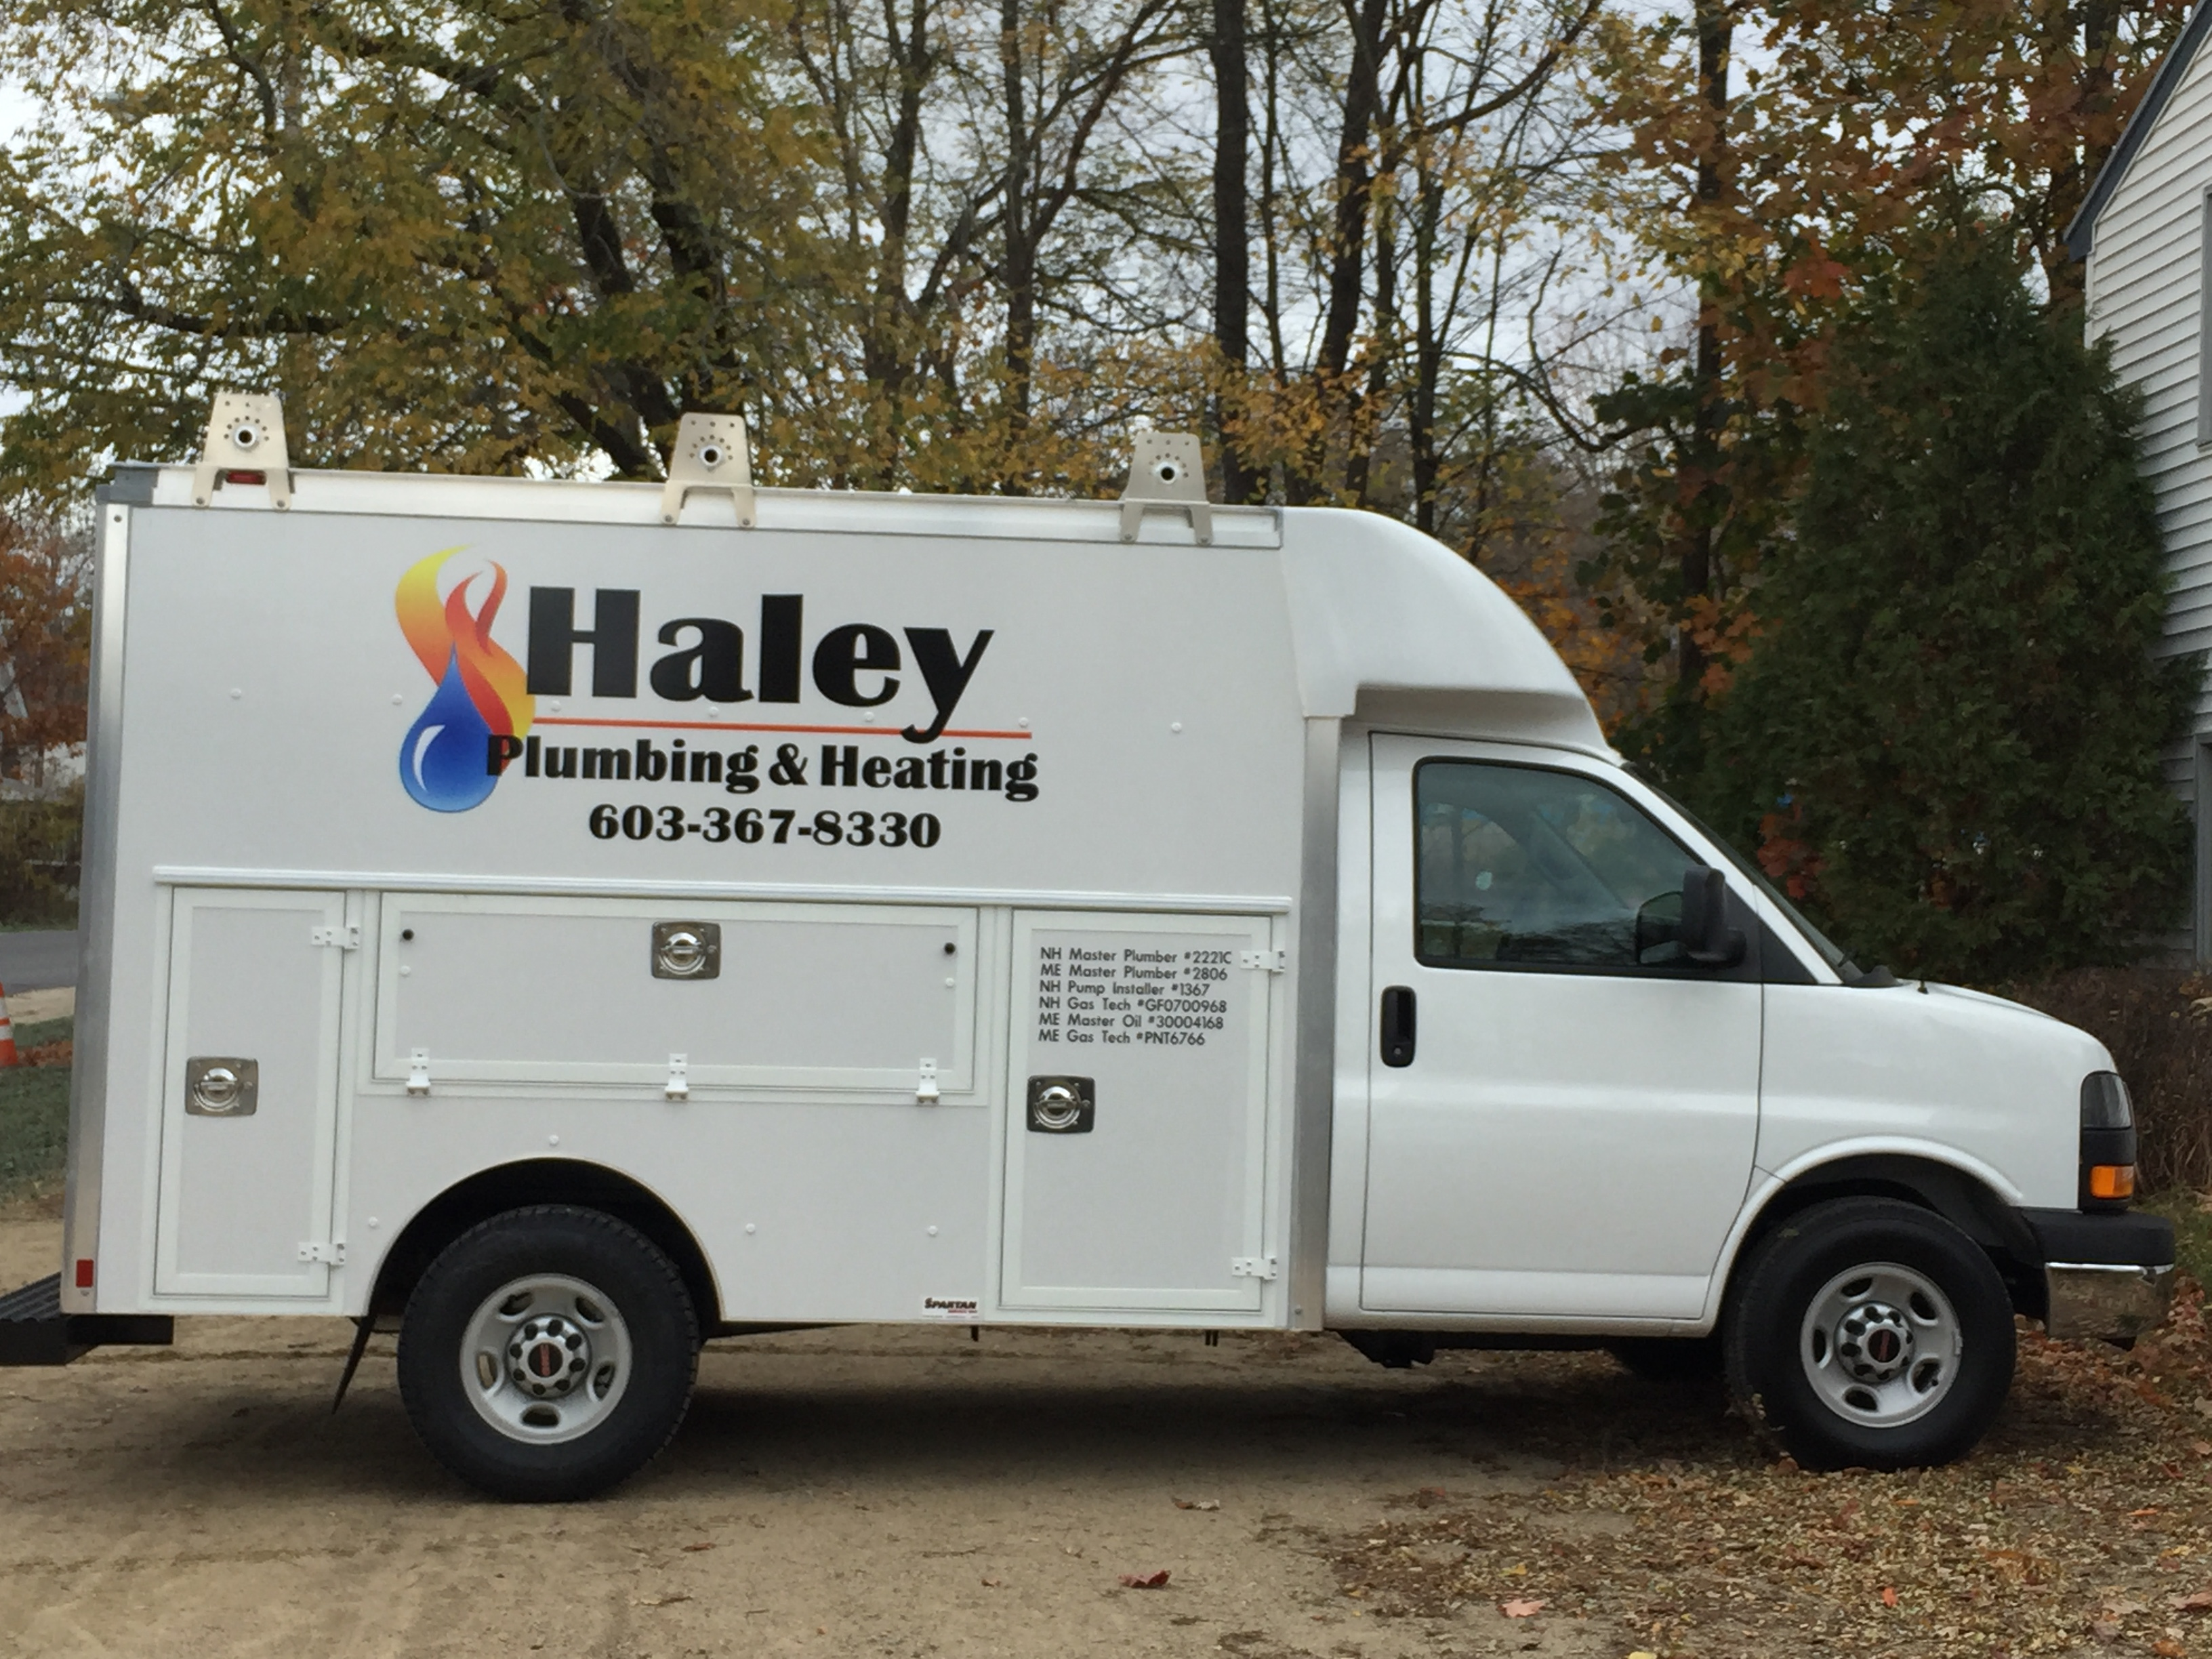 haley 2016 Box truck